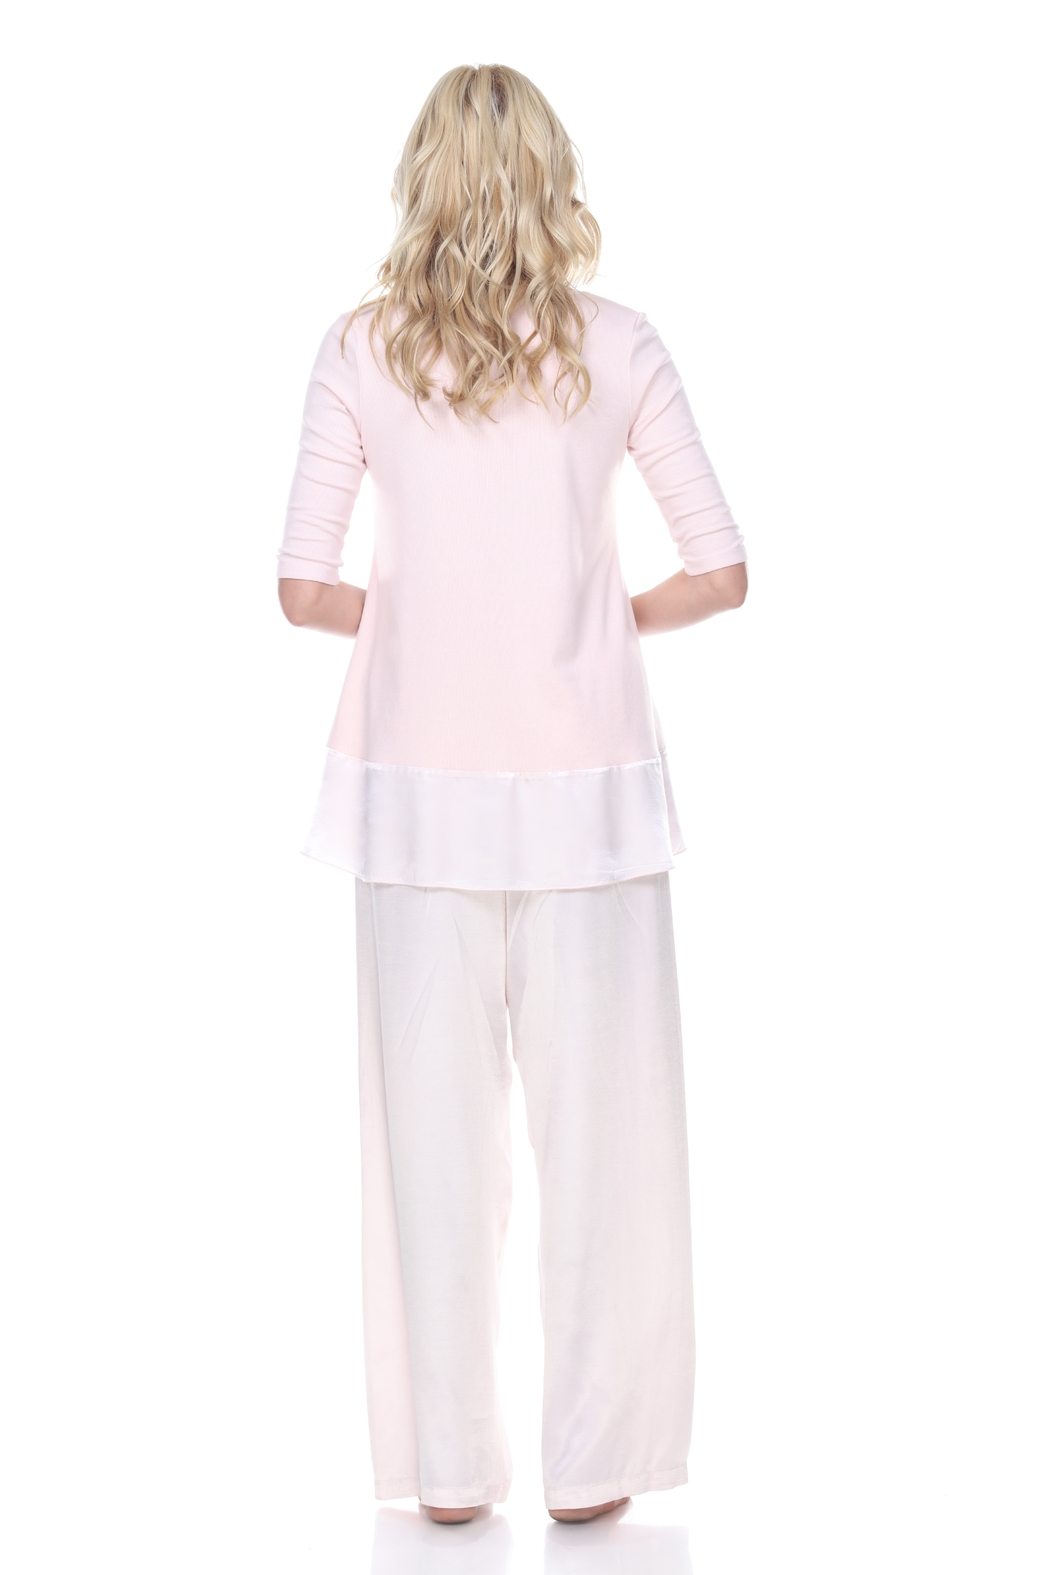 PJHARLOW Rib Knit 3/4 Sleeve Swing Top With Satin Trim - Front Full Image